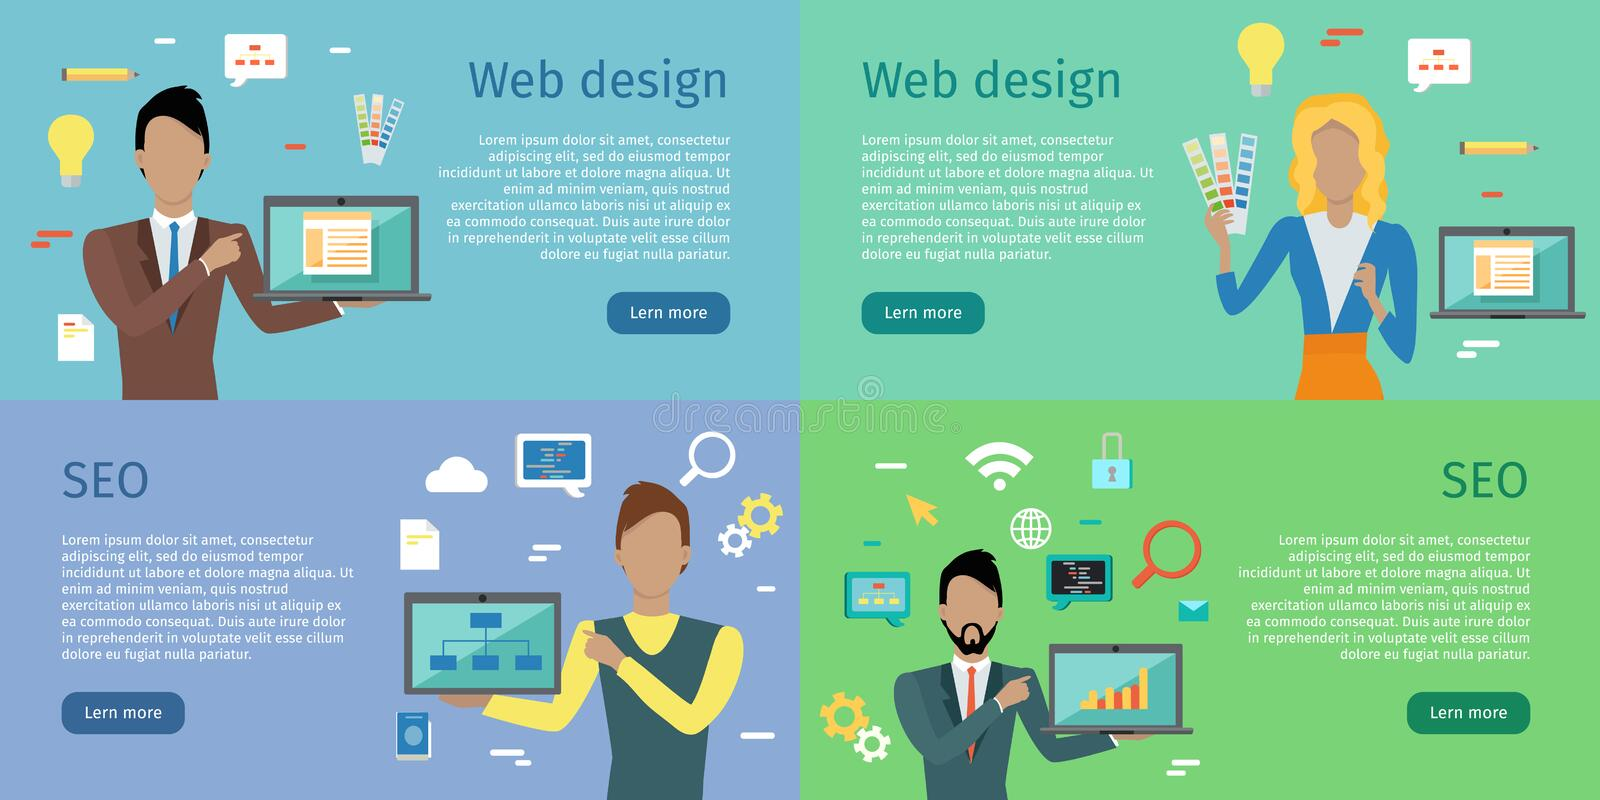 Web design, SEO Infographic Set illustration libre de droits